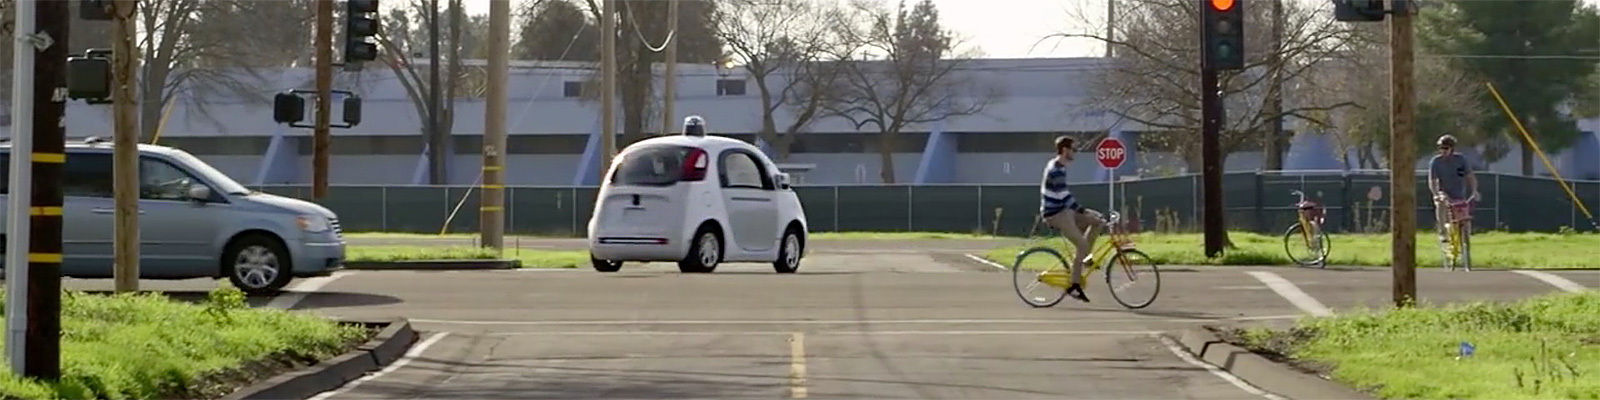 Ready for the Road(Google Self-Driving Car Project)